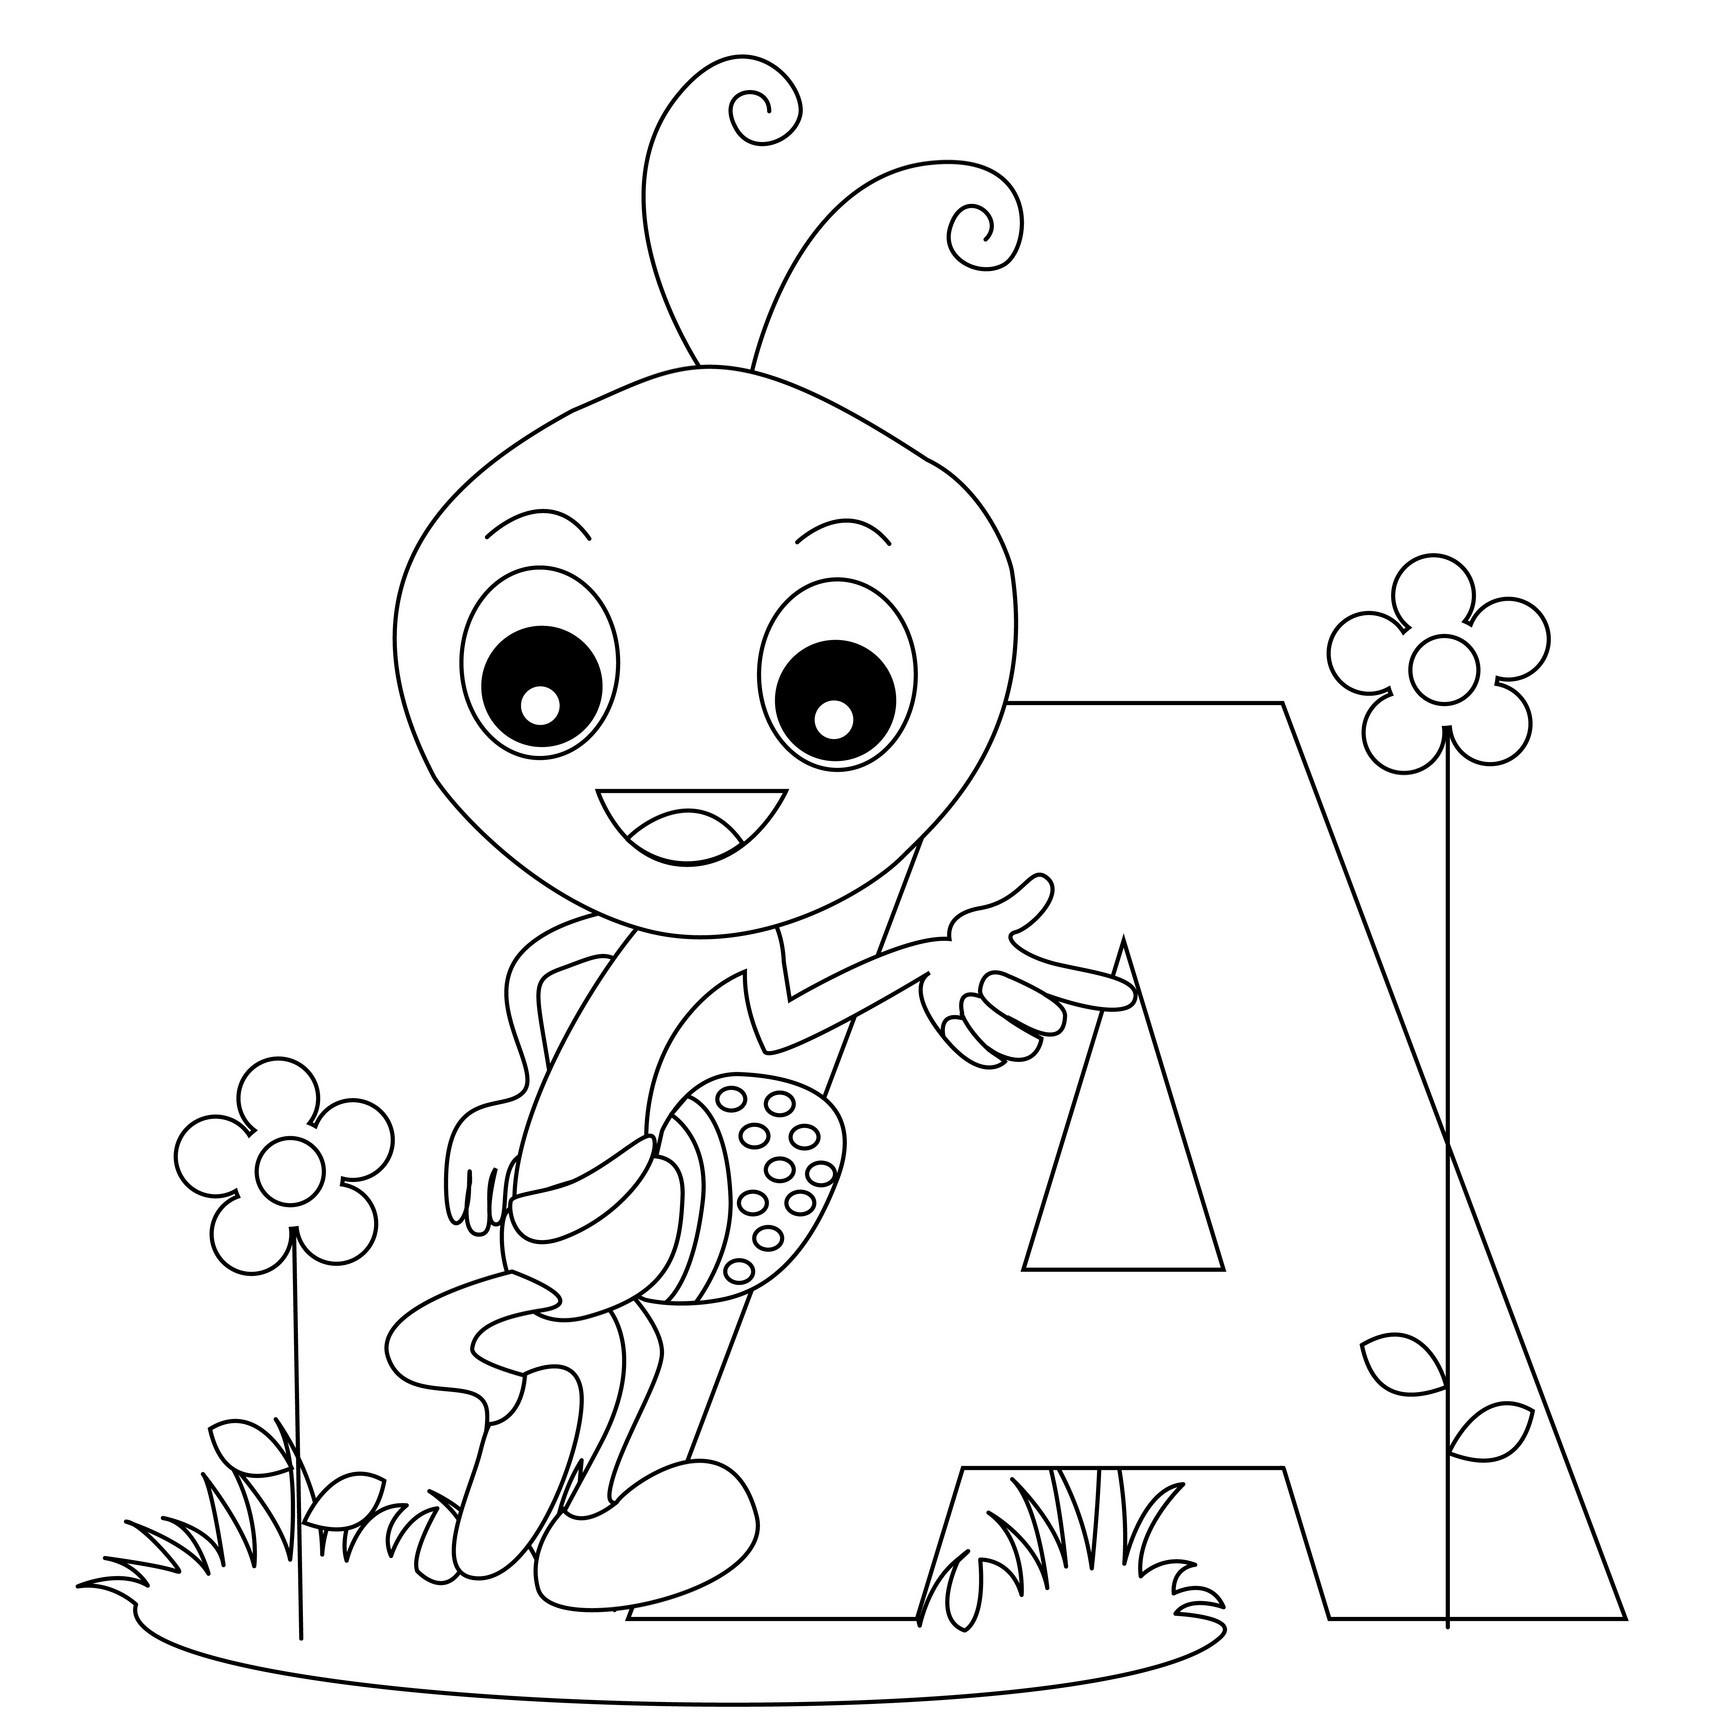 free printable alphabet coloring pages for kids best With letter coloring books